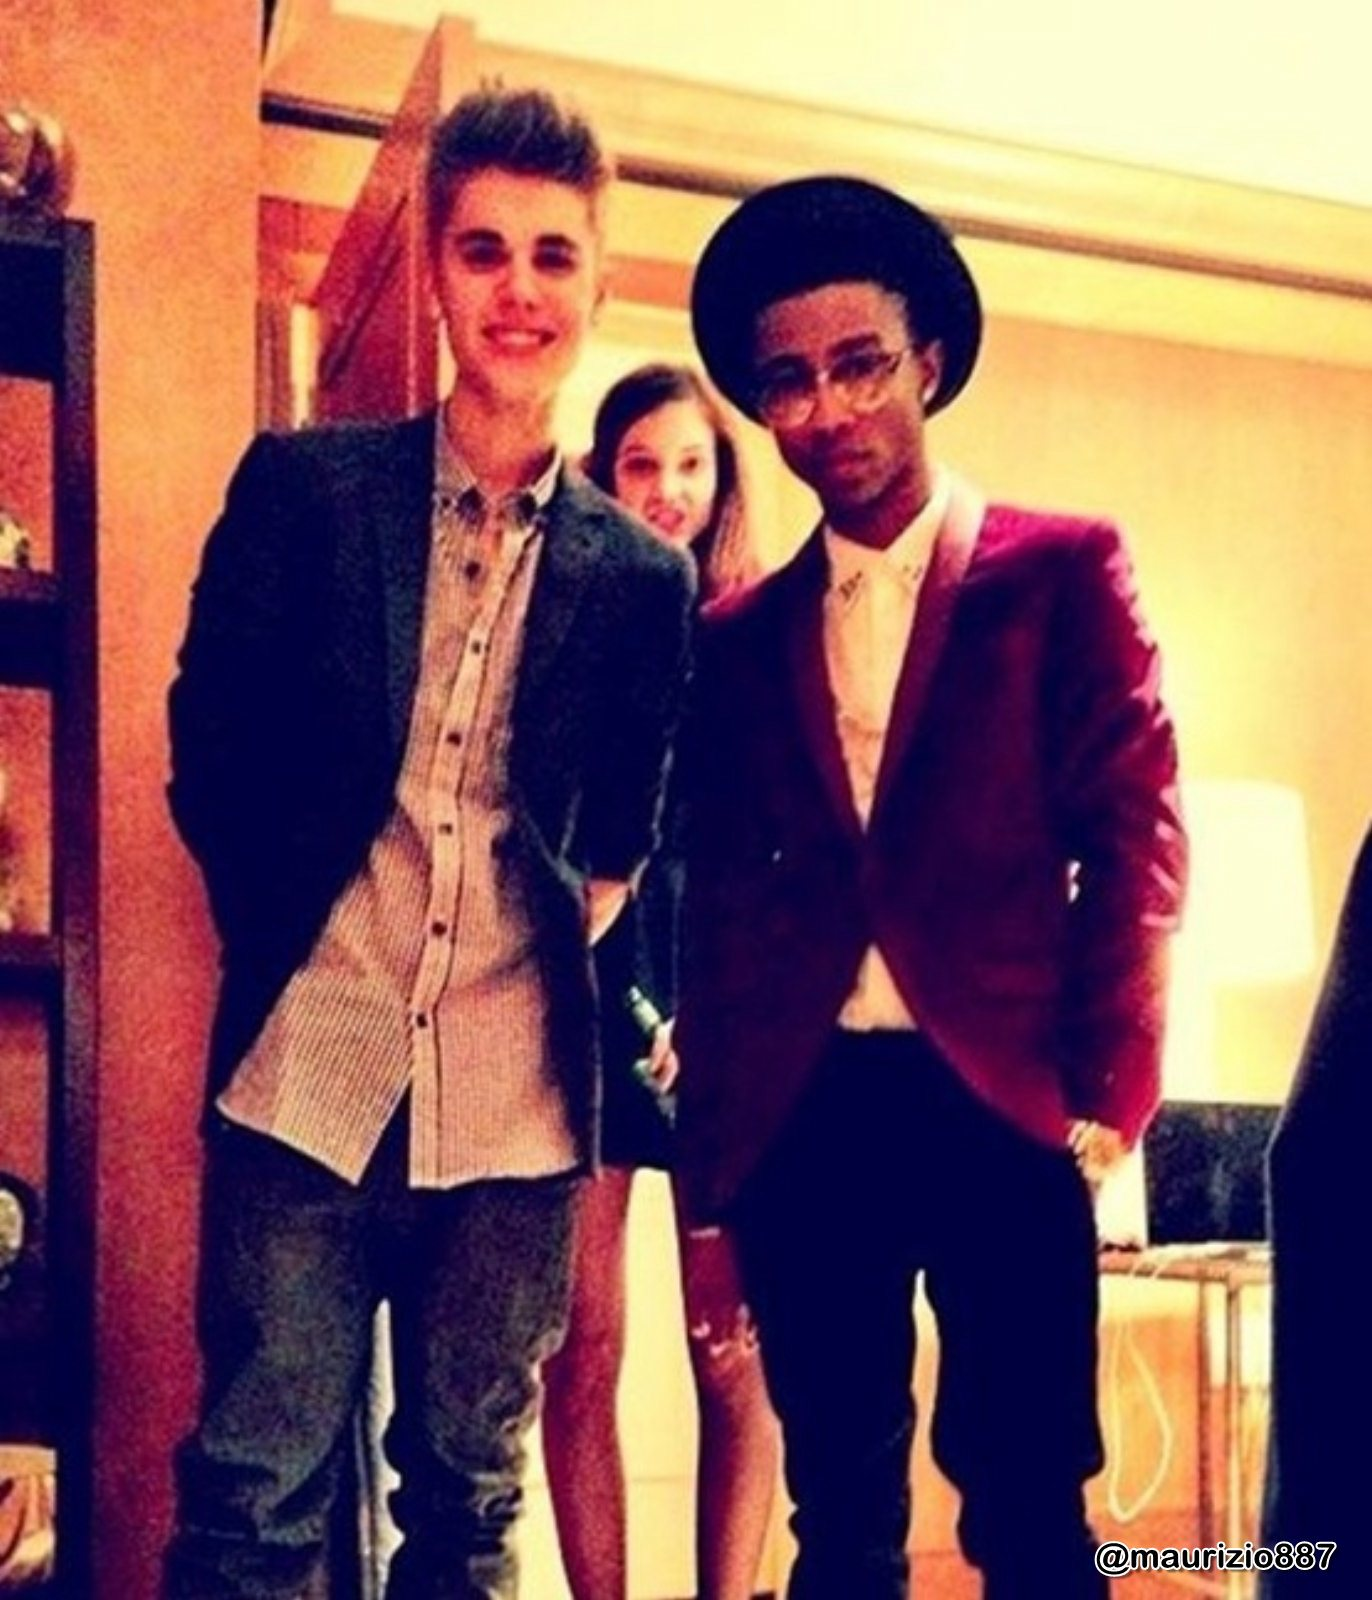 Lil twist and justin bieber 2012